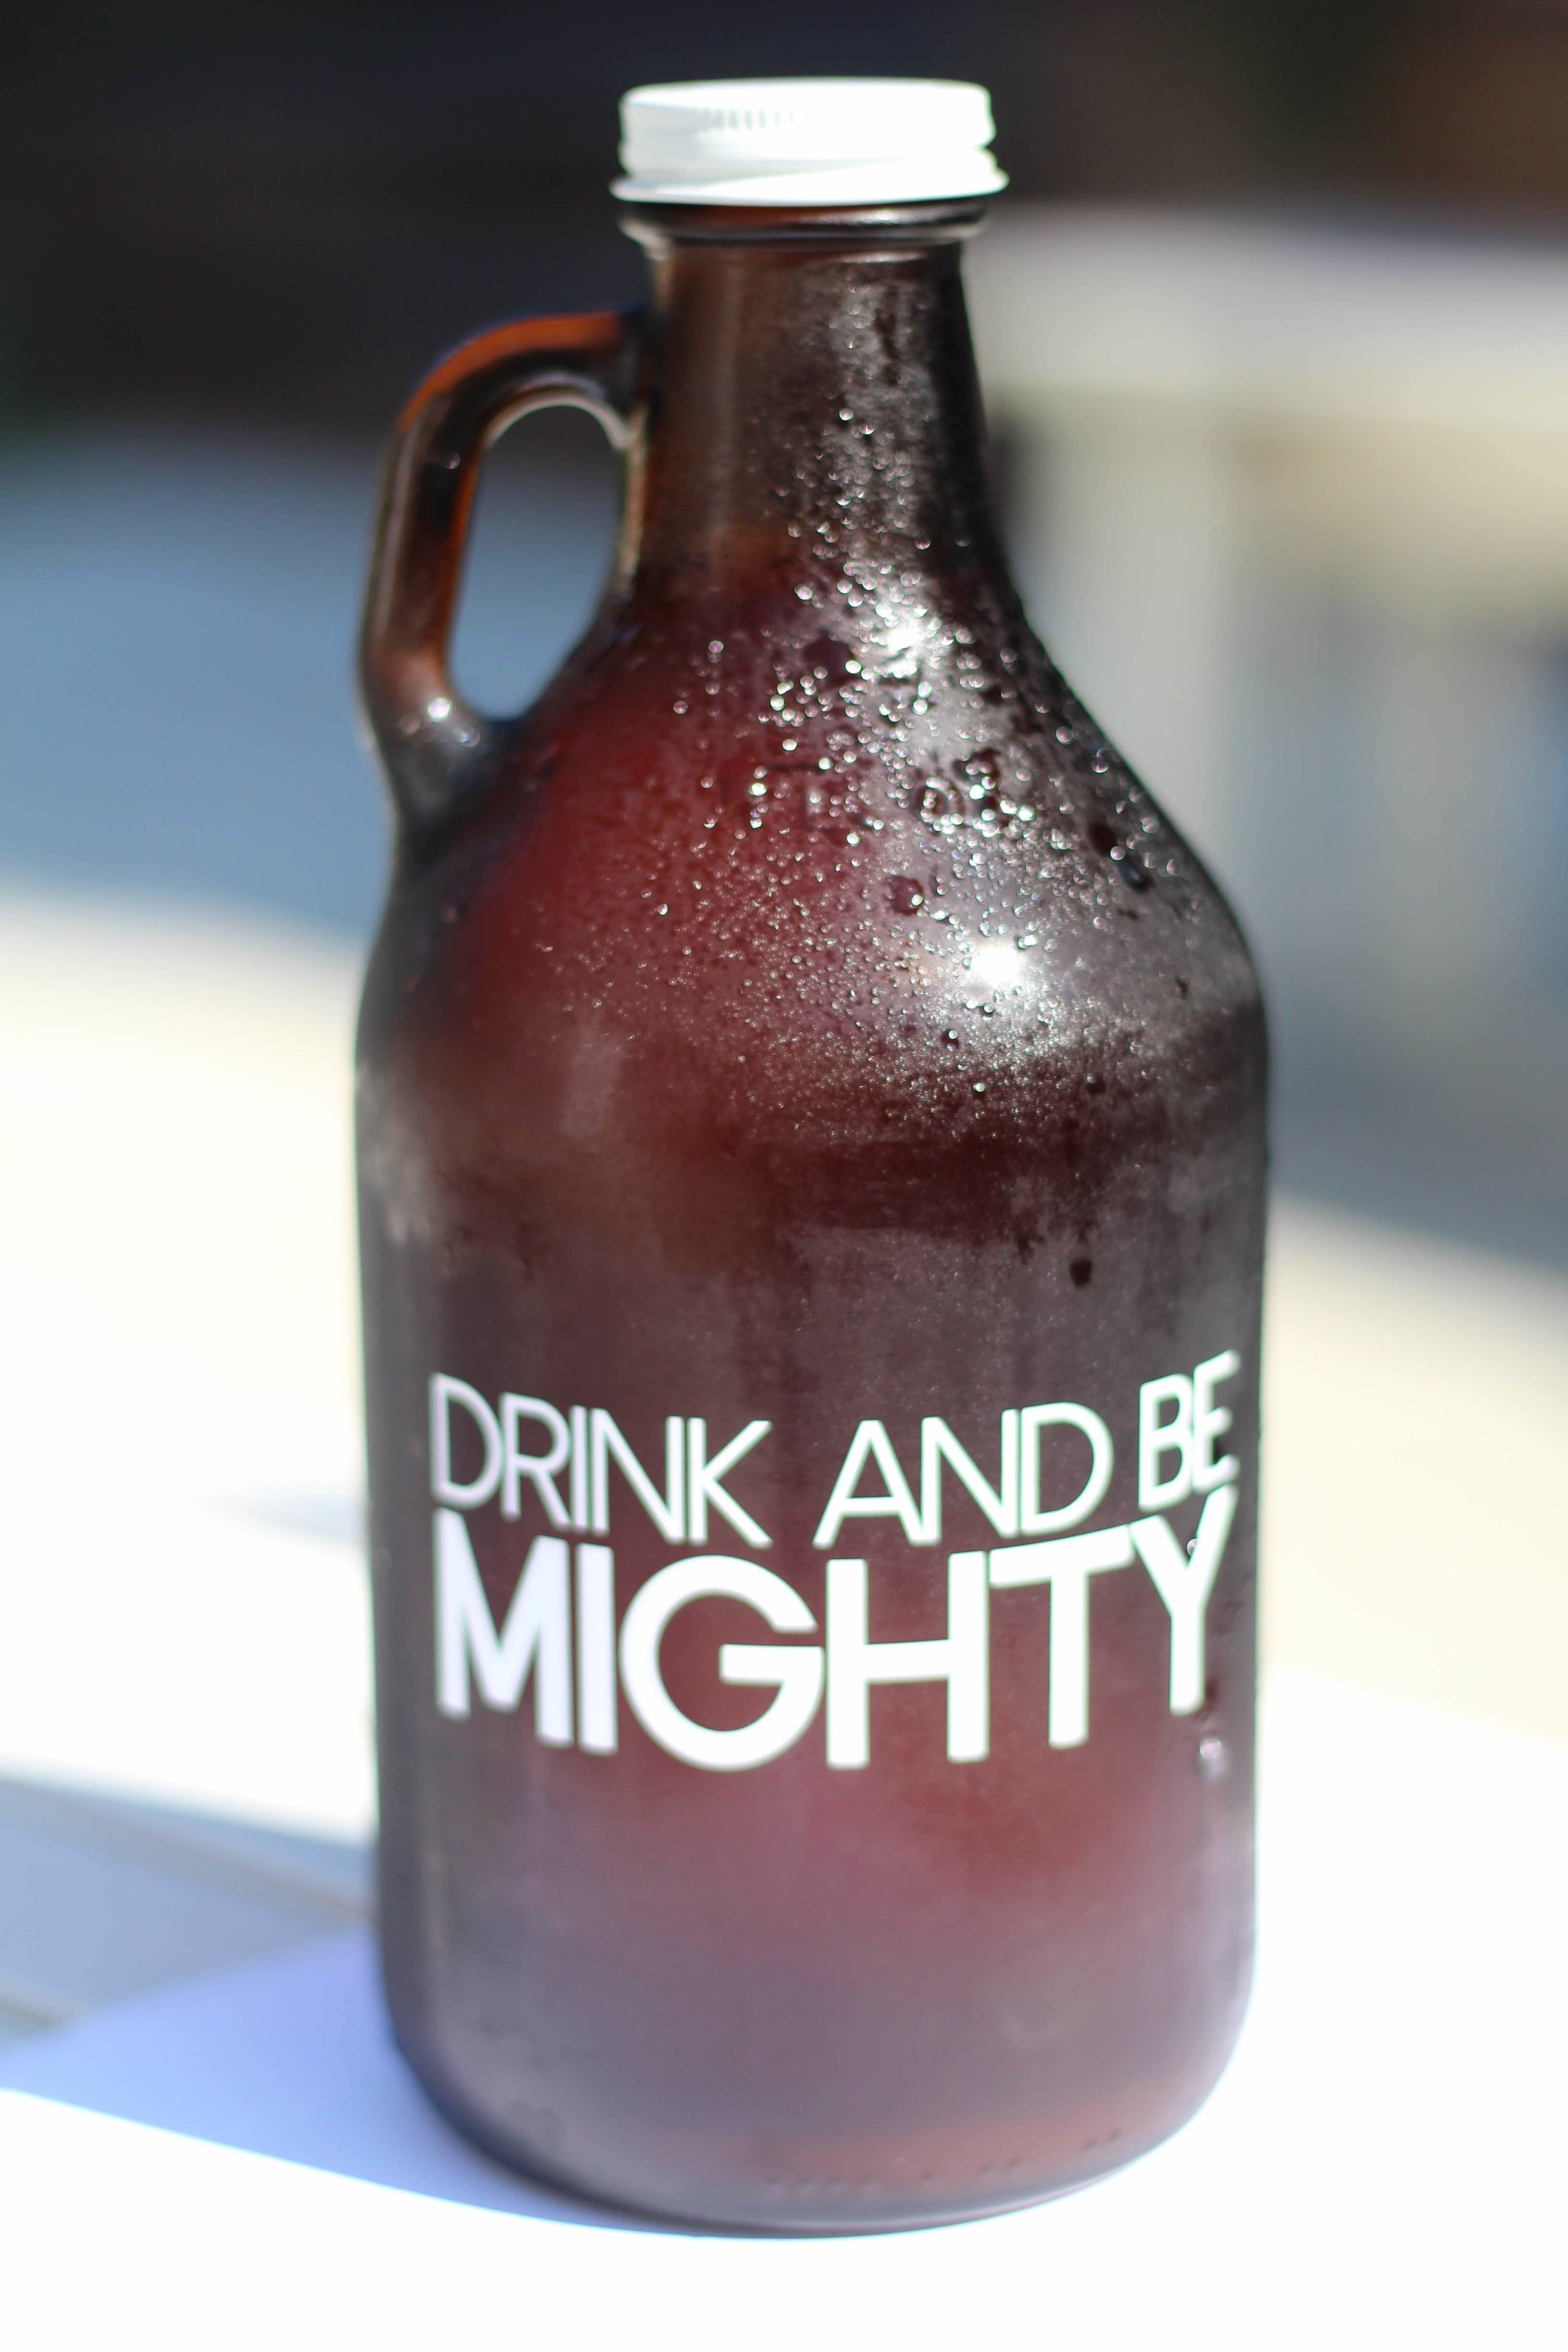 32 oz growlers - Subscribe and save with our weekly delivery service. We will deliver 2-4 growlers to your door each week and pick up your empties.We currently deliver to Solana Beach, CA. If you are outside this area please contact us.